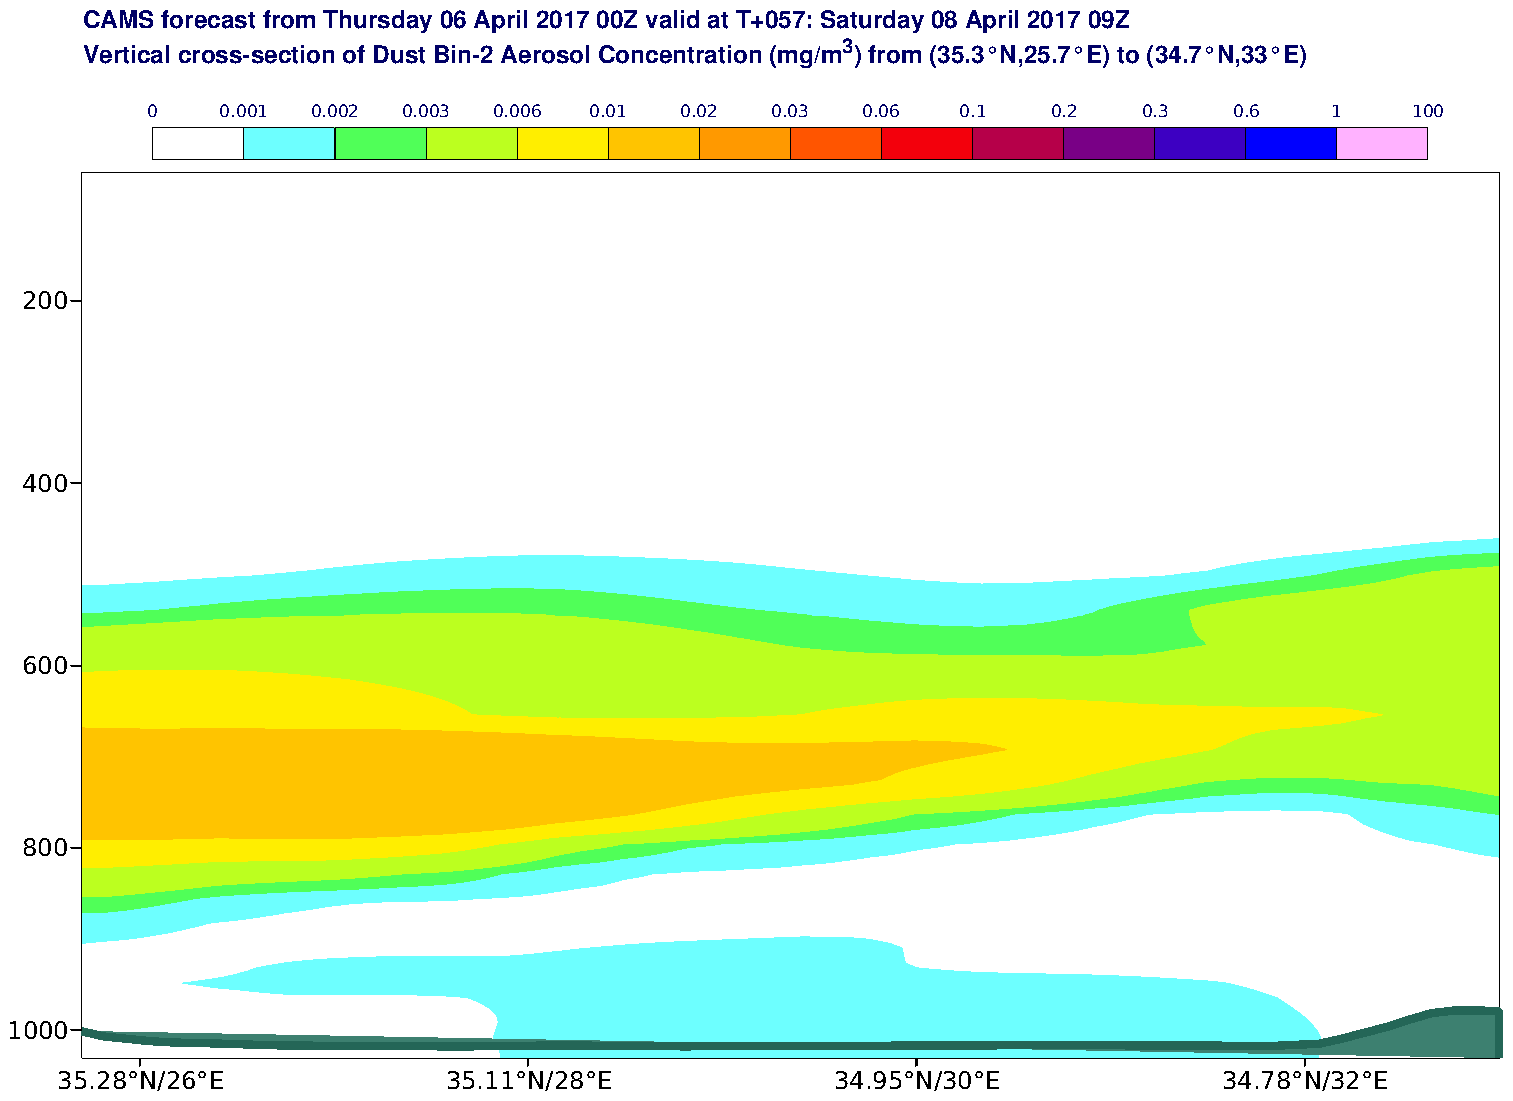 Vertical cross-section of Dust Bin-2 Aerosol Concentration (mg/m3) valid at T57 - 2017-04-08 09:00